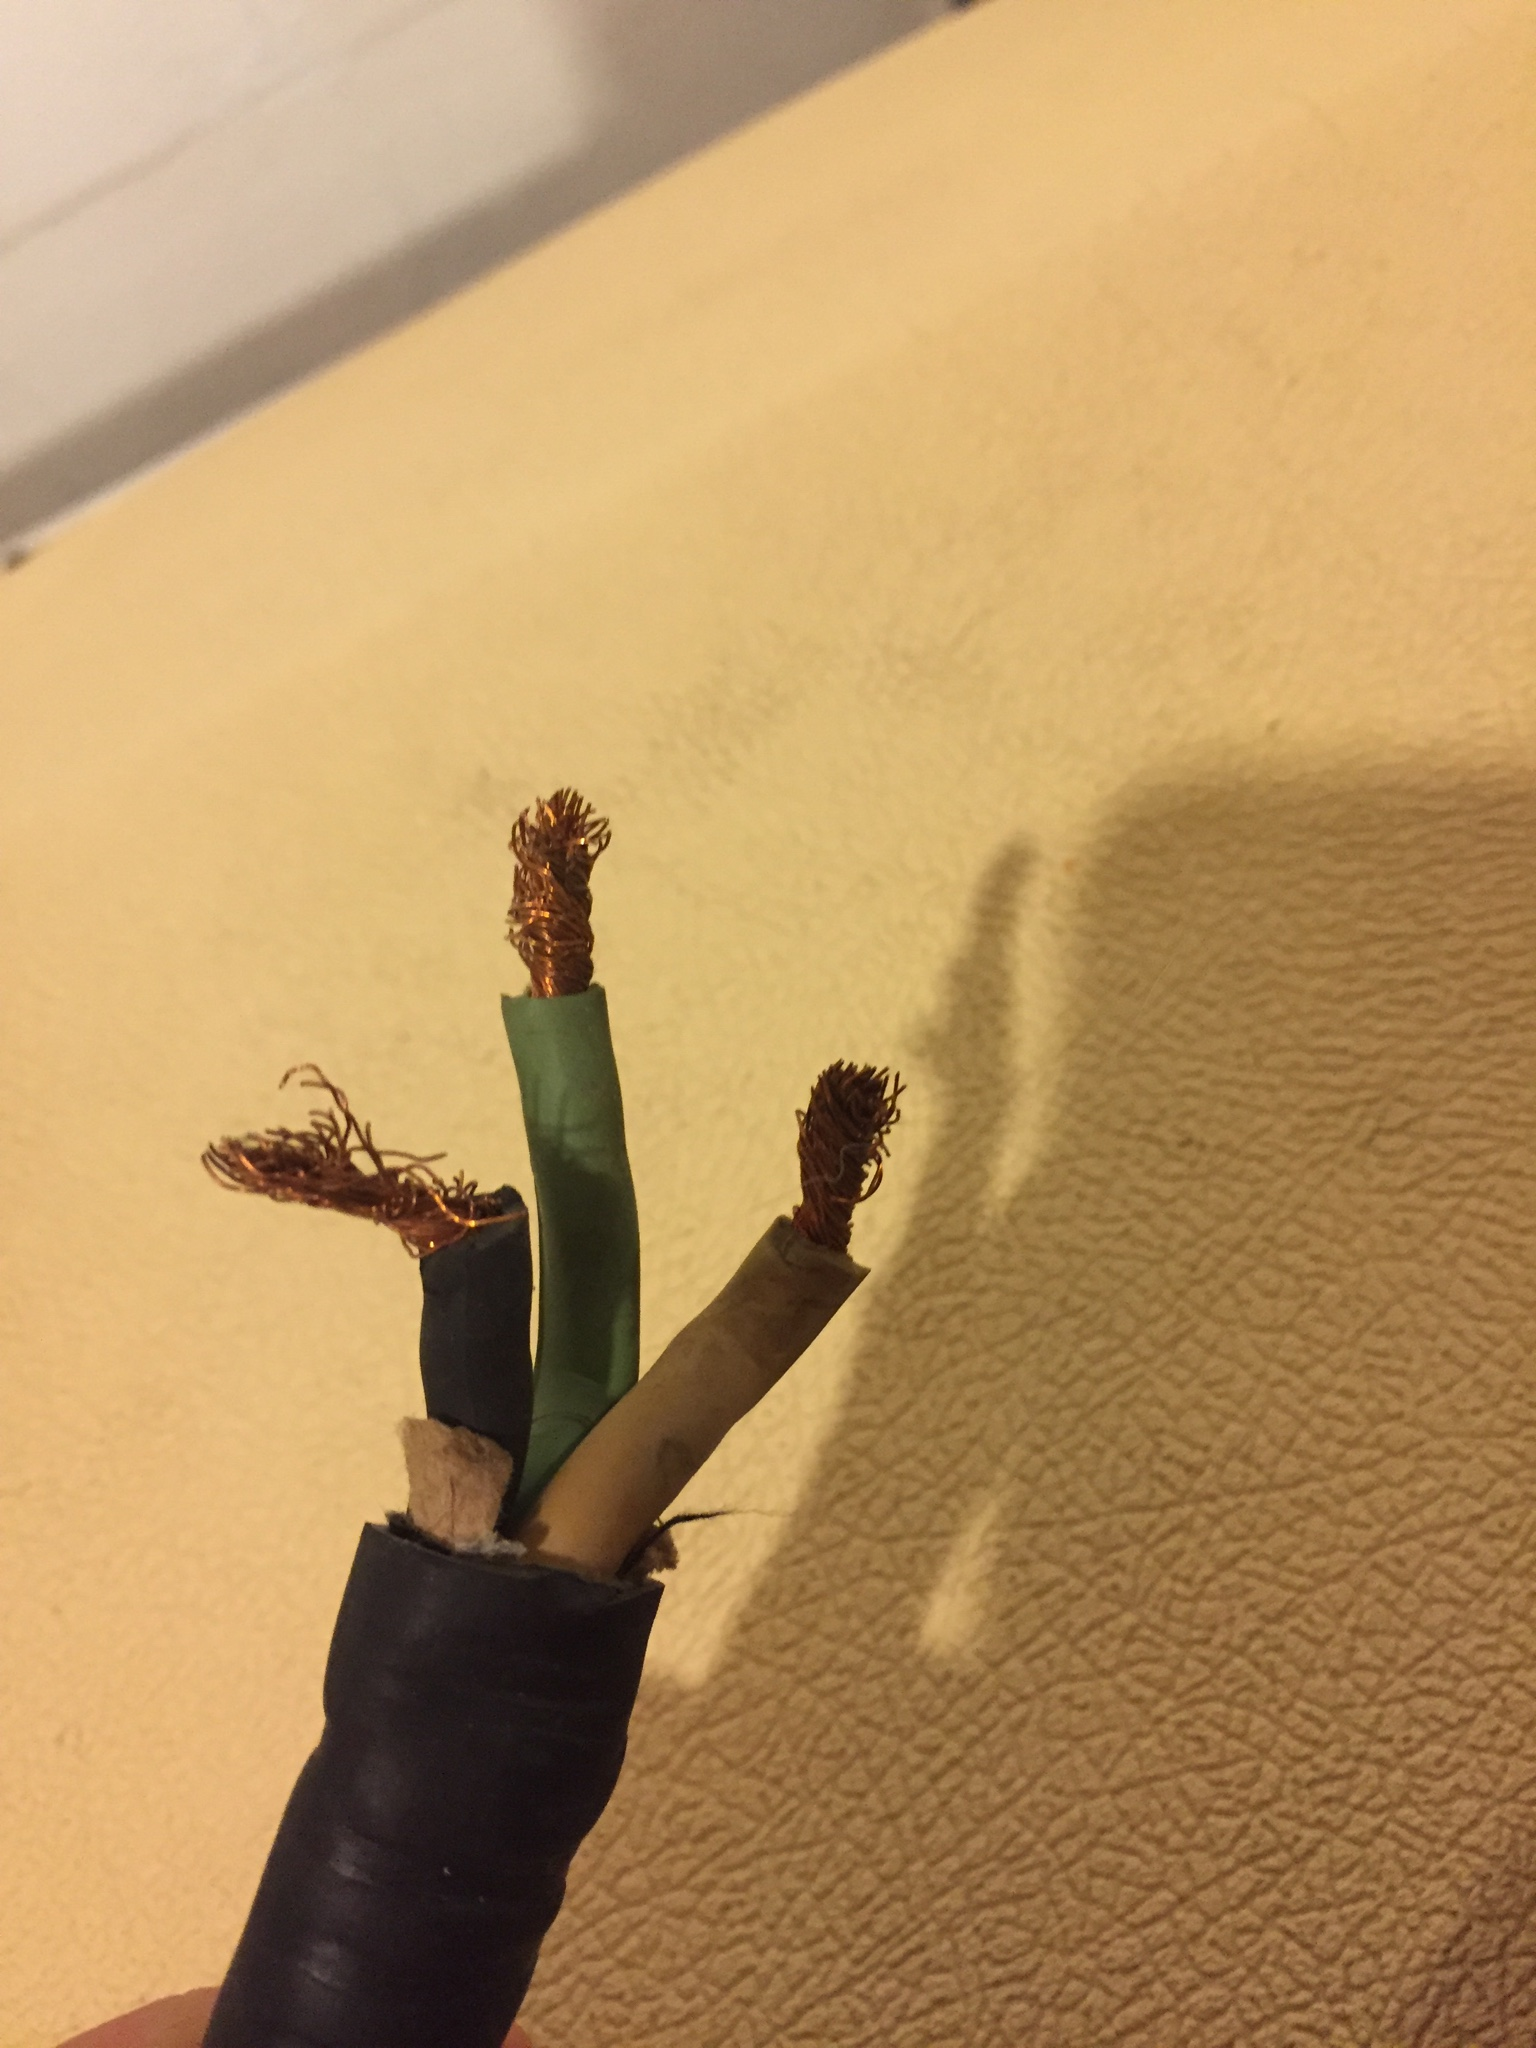 Electrical Help 220v Tanning Bed Issue - Electrical